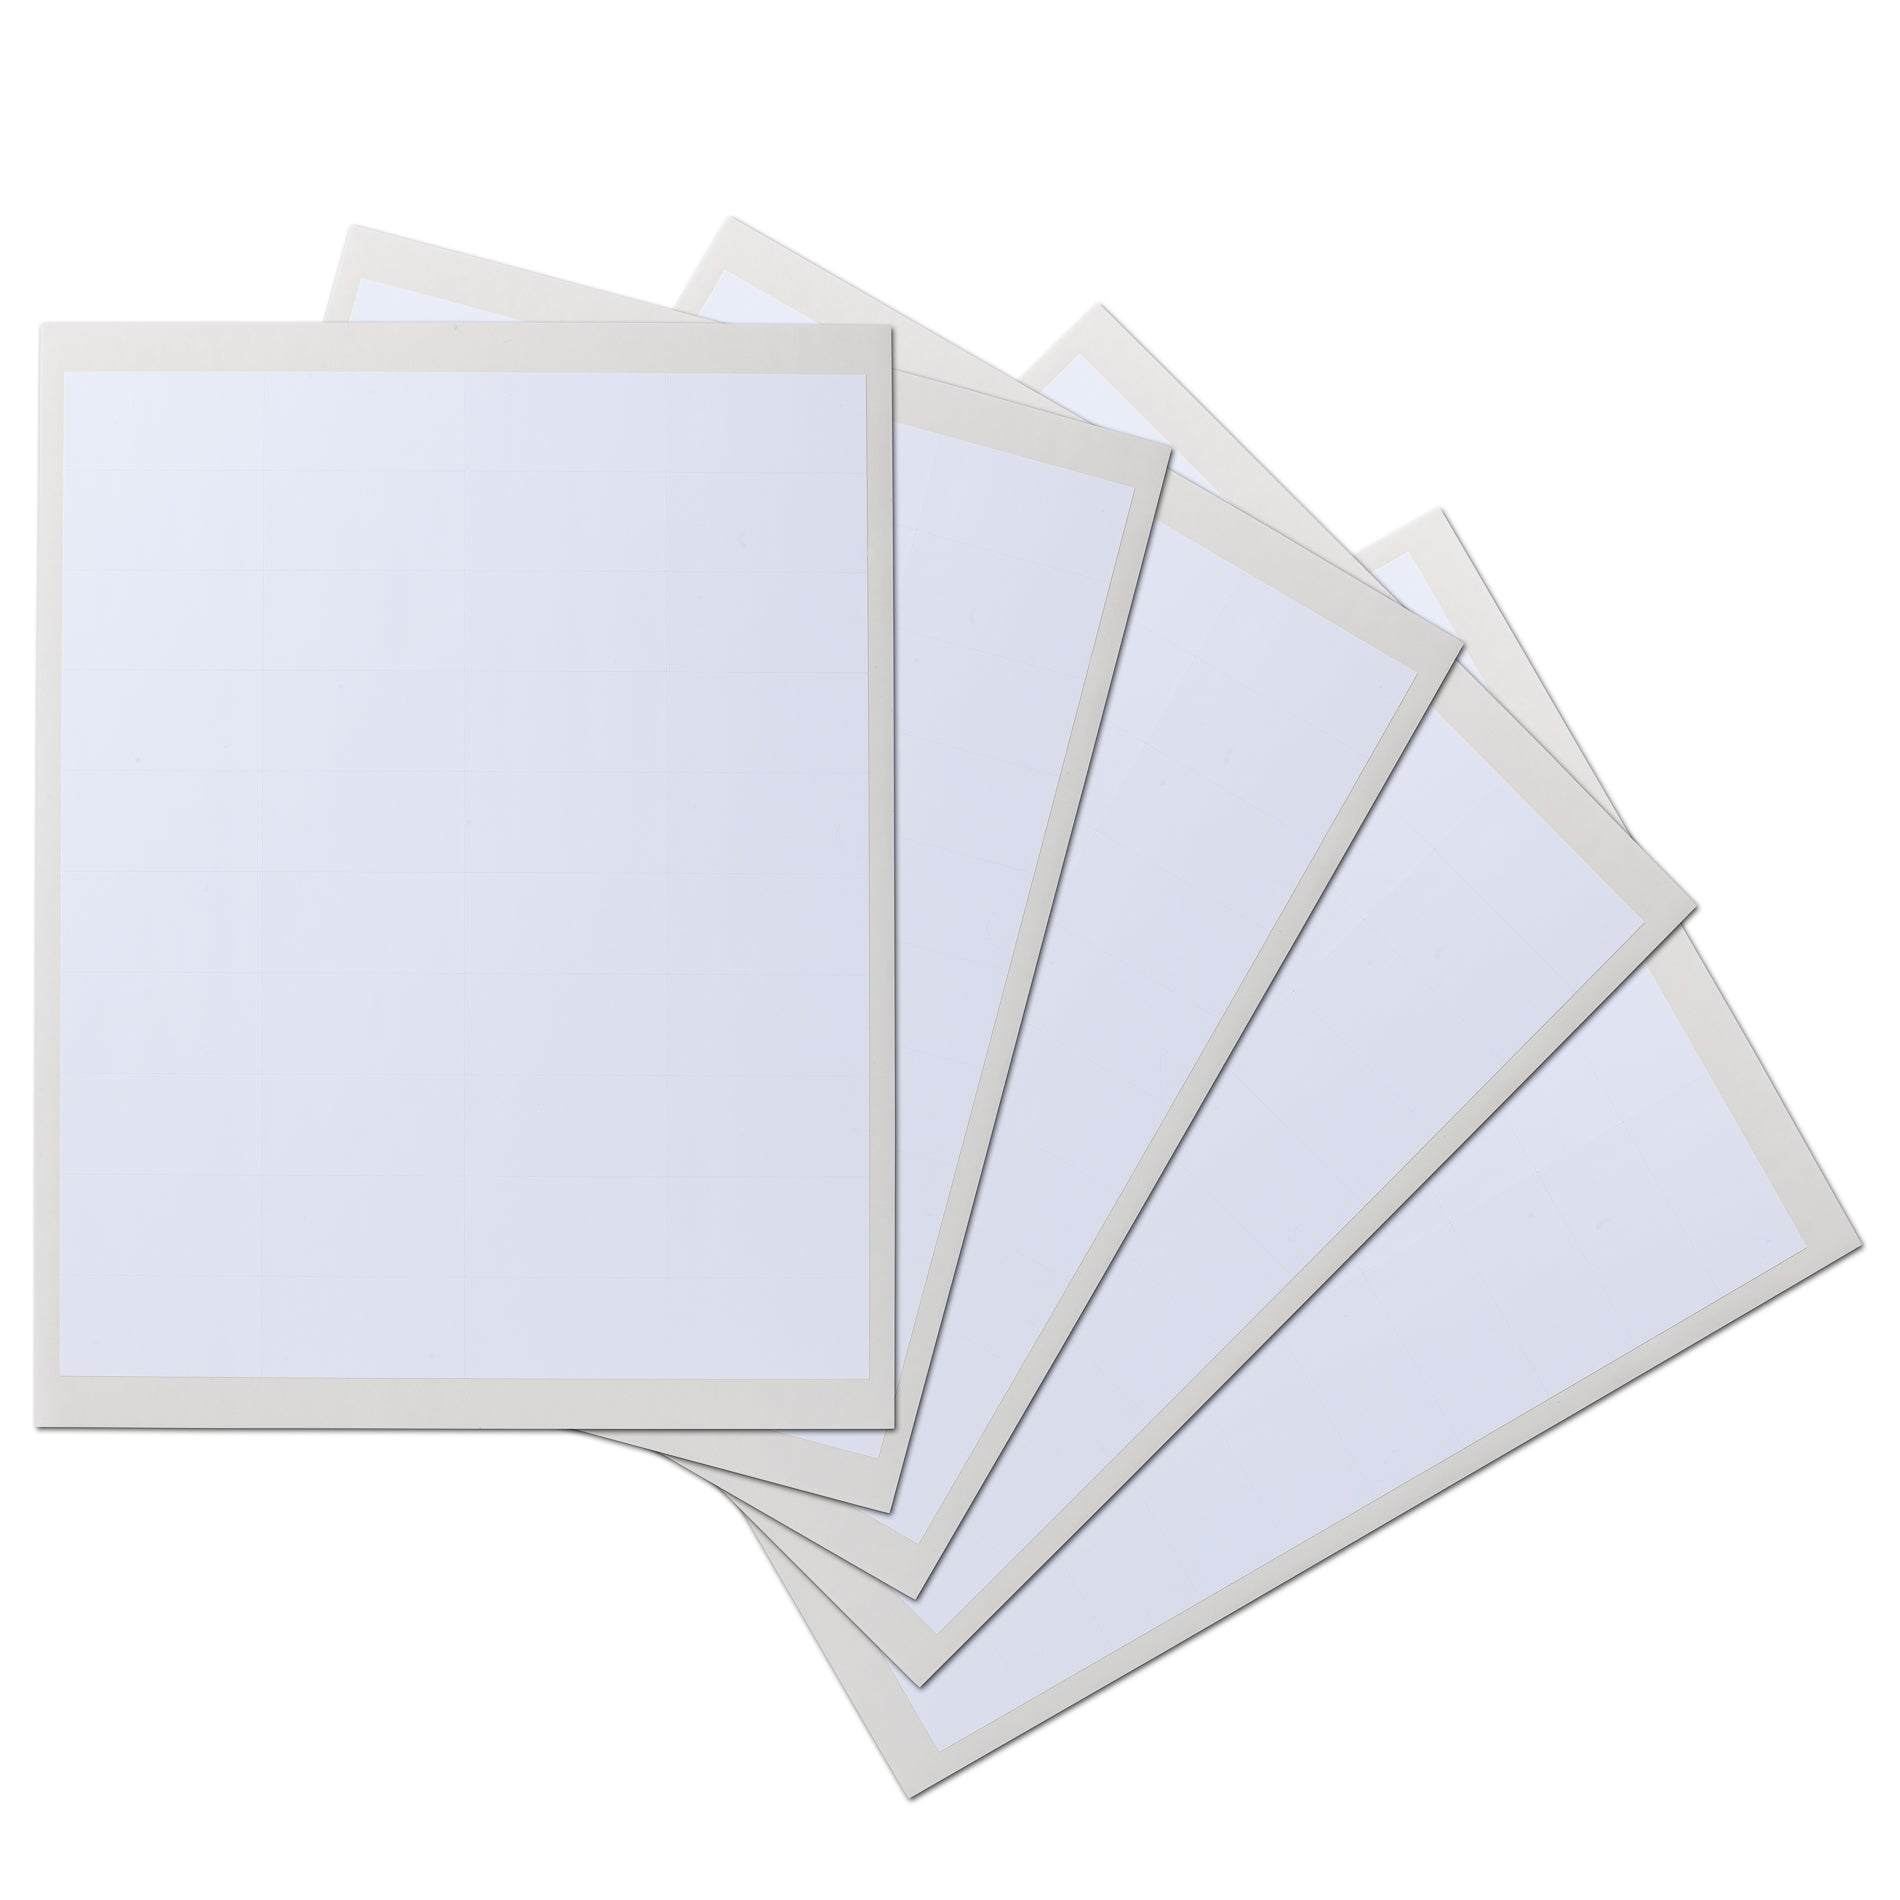 2 x1 inch Rectangle Waterproof Labels